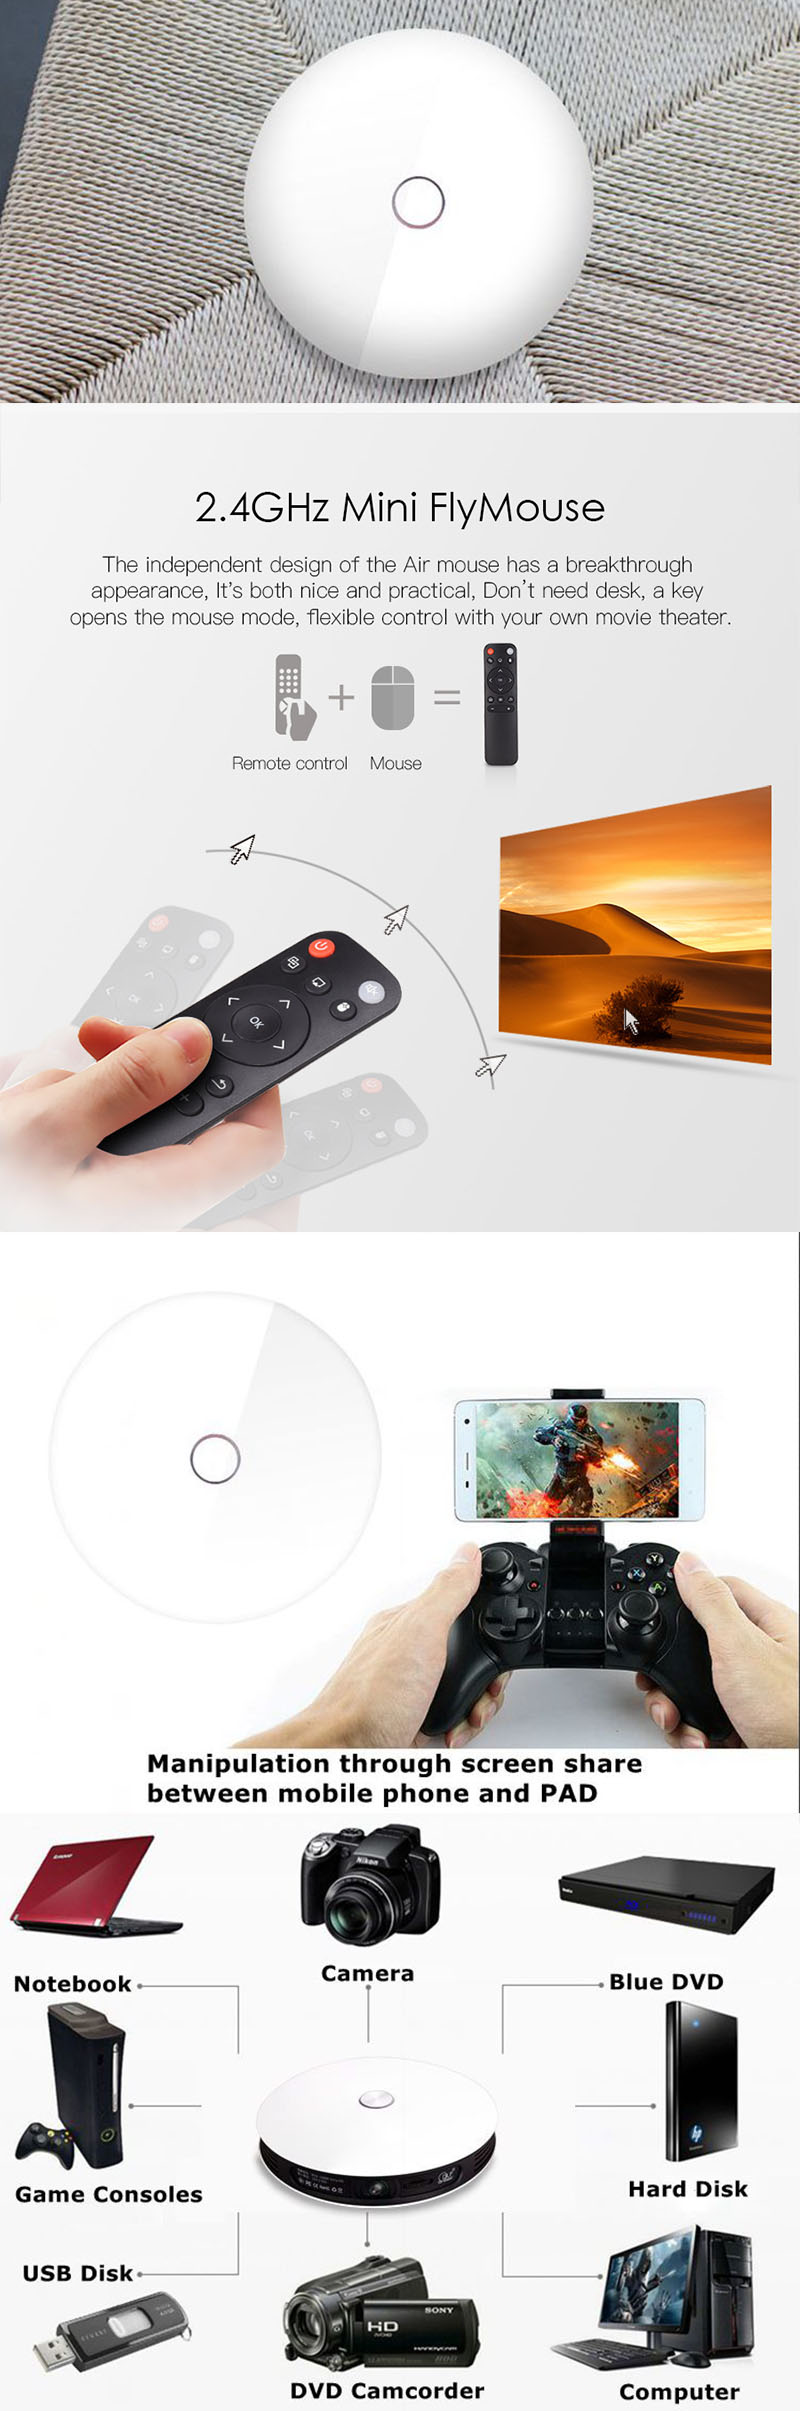 Android wifi astuto senza fili di bluetooth HD video 1080 p 4 k 3d home theater mini proiettore dlp uv portatile con HD USB di DEVIAZIONE STANDARD TF carta